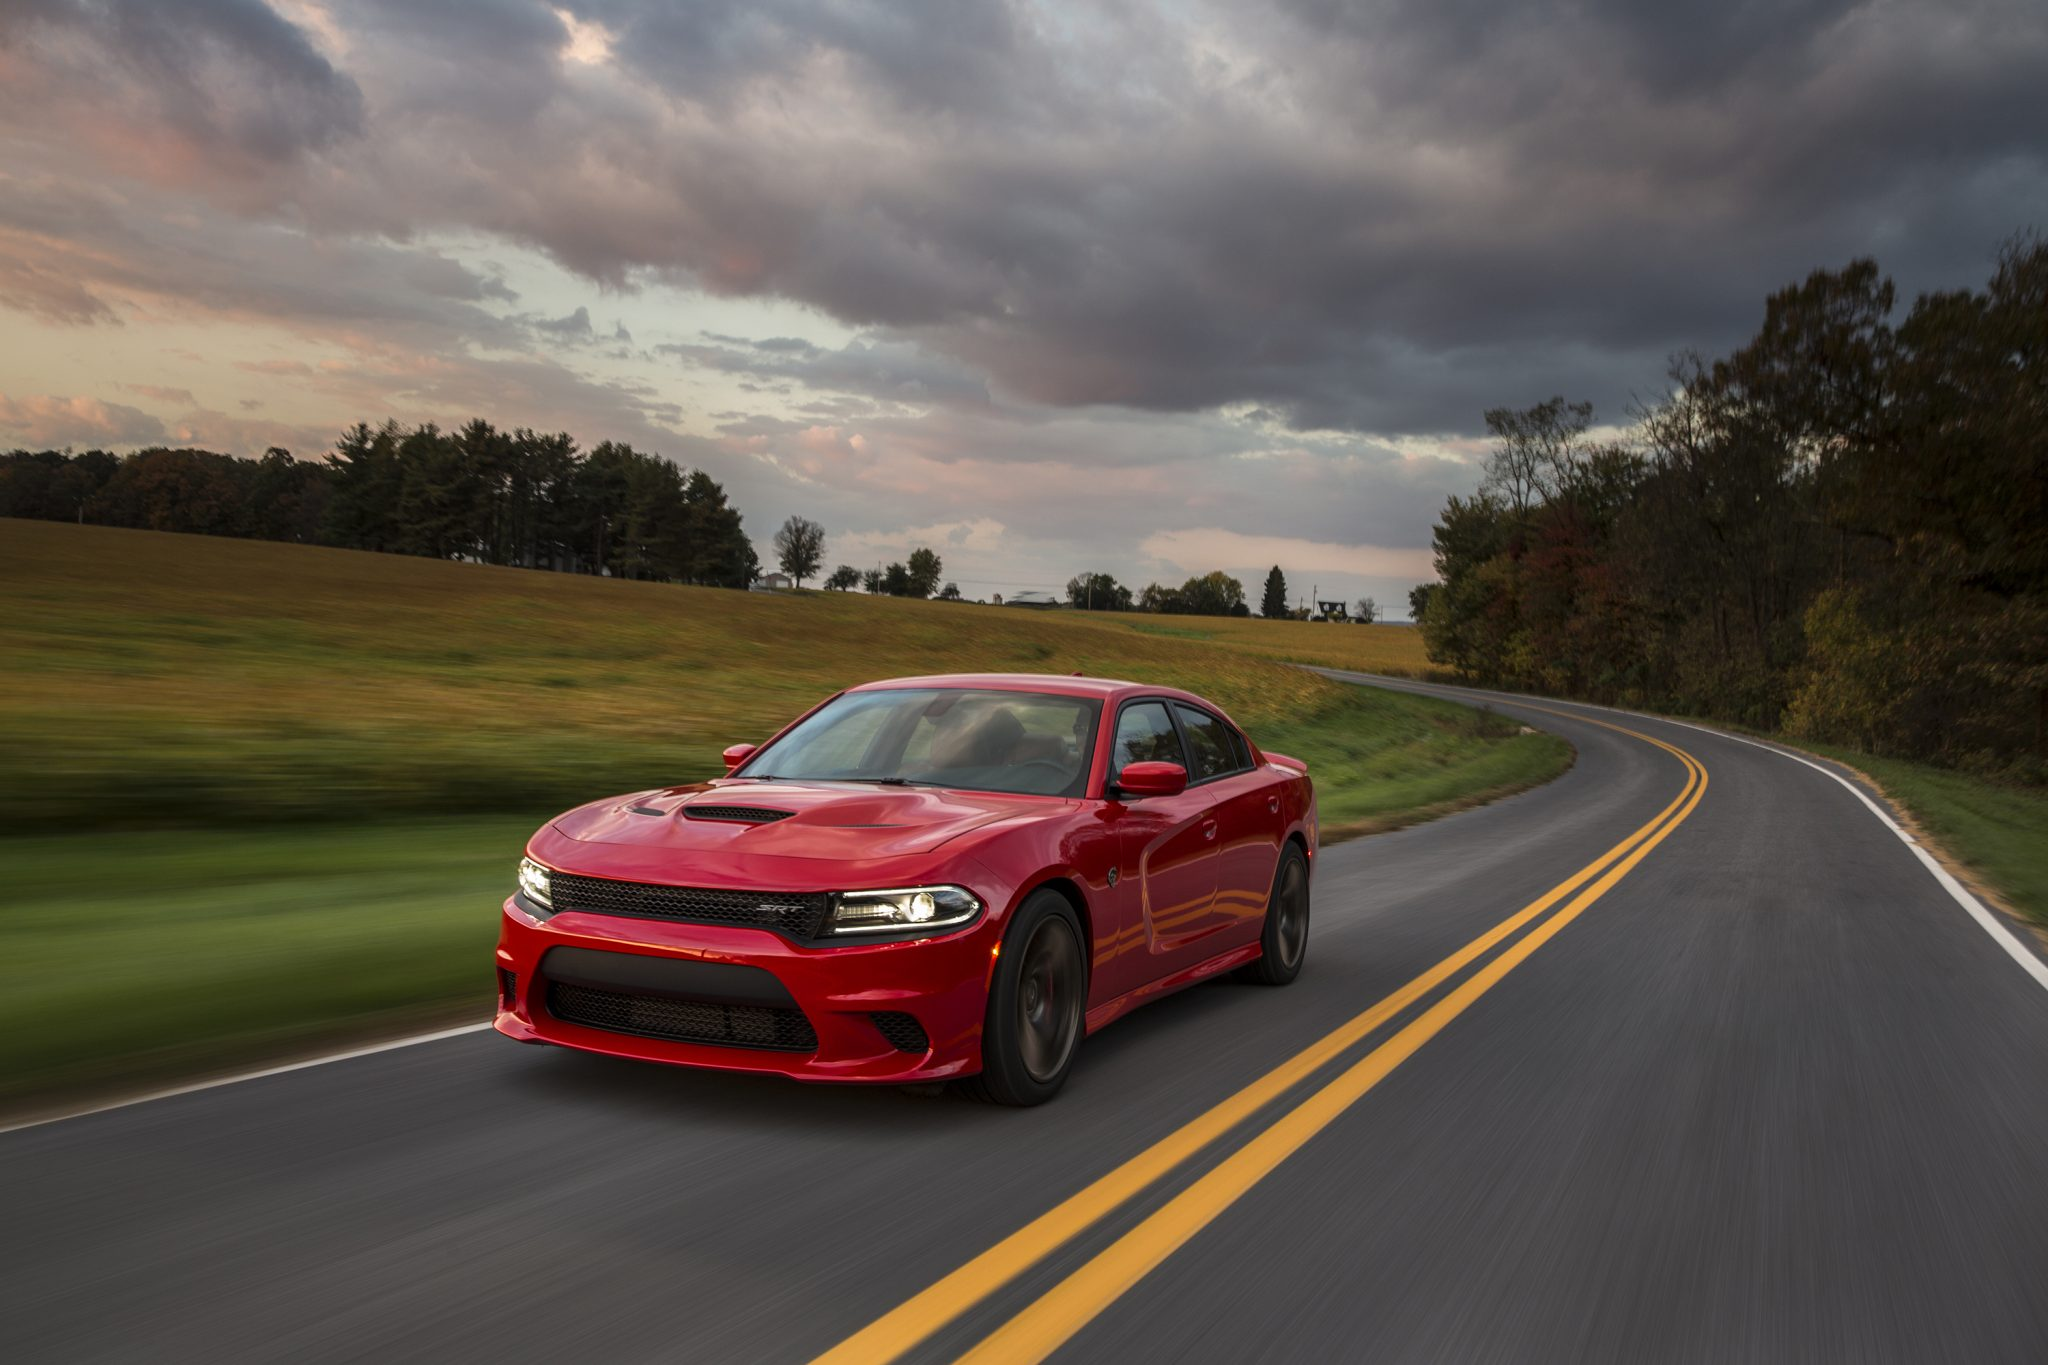 2015 Dodge Charger Srt Hellcat Named Digital Trends Best